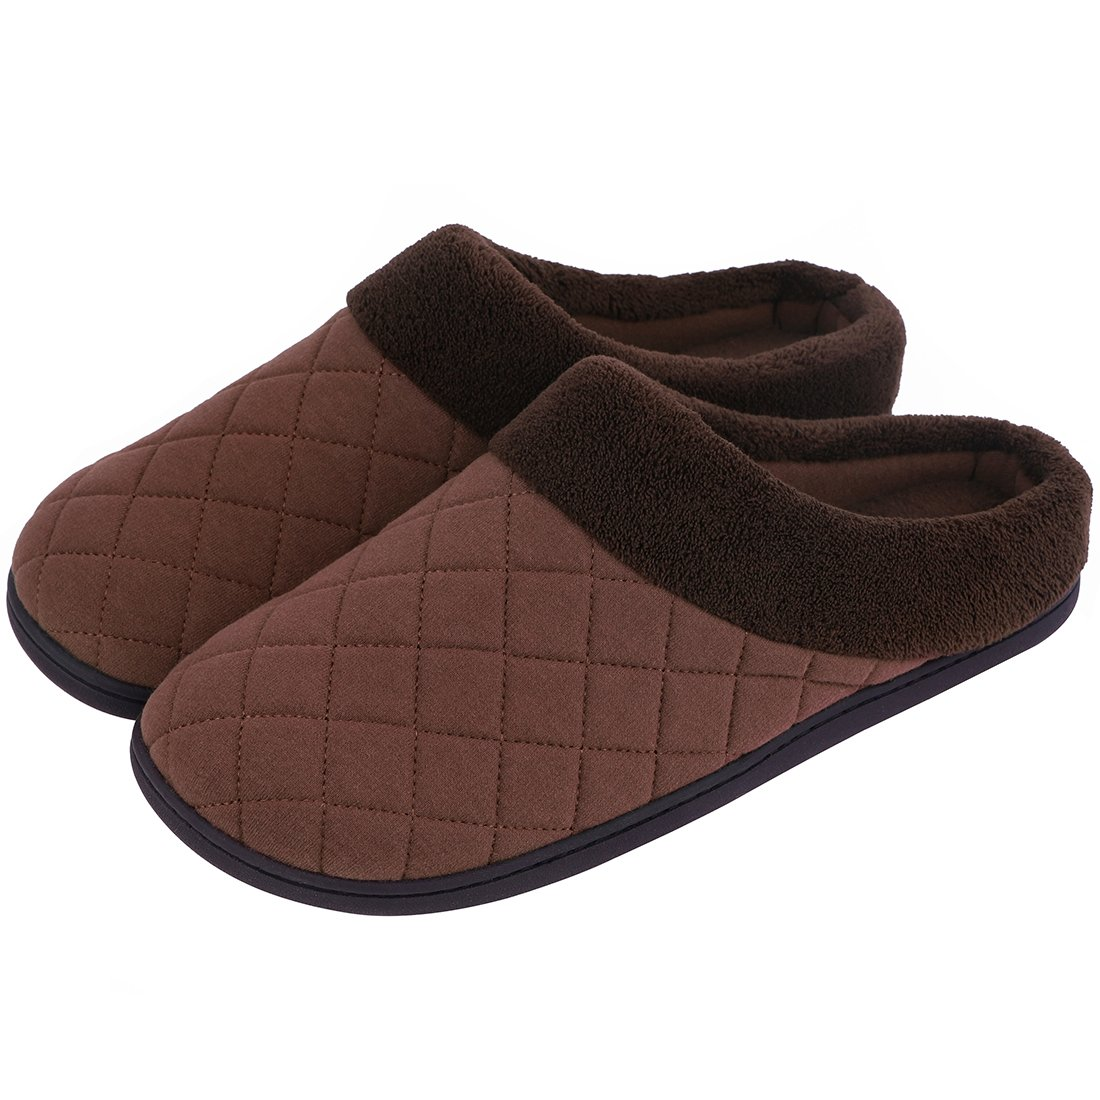 Men's Memory Foam House Slippers Summer Quilted House Shoes for Indoor Outdoor Use (Large/11-12 D(M) US, Coffee)